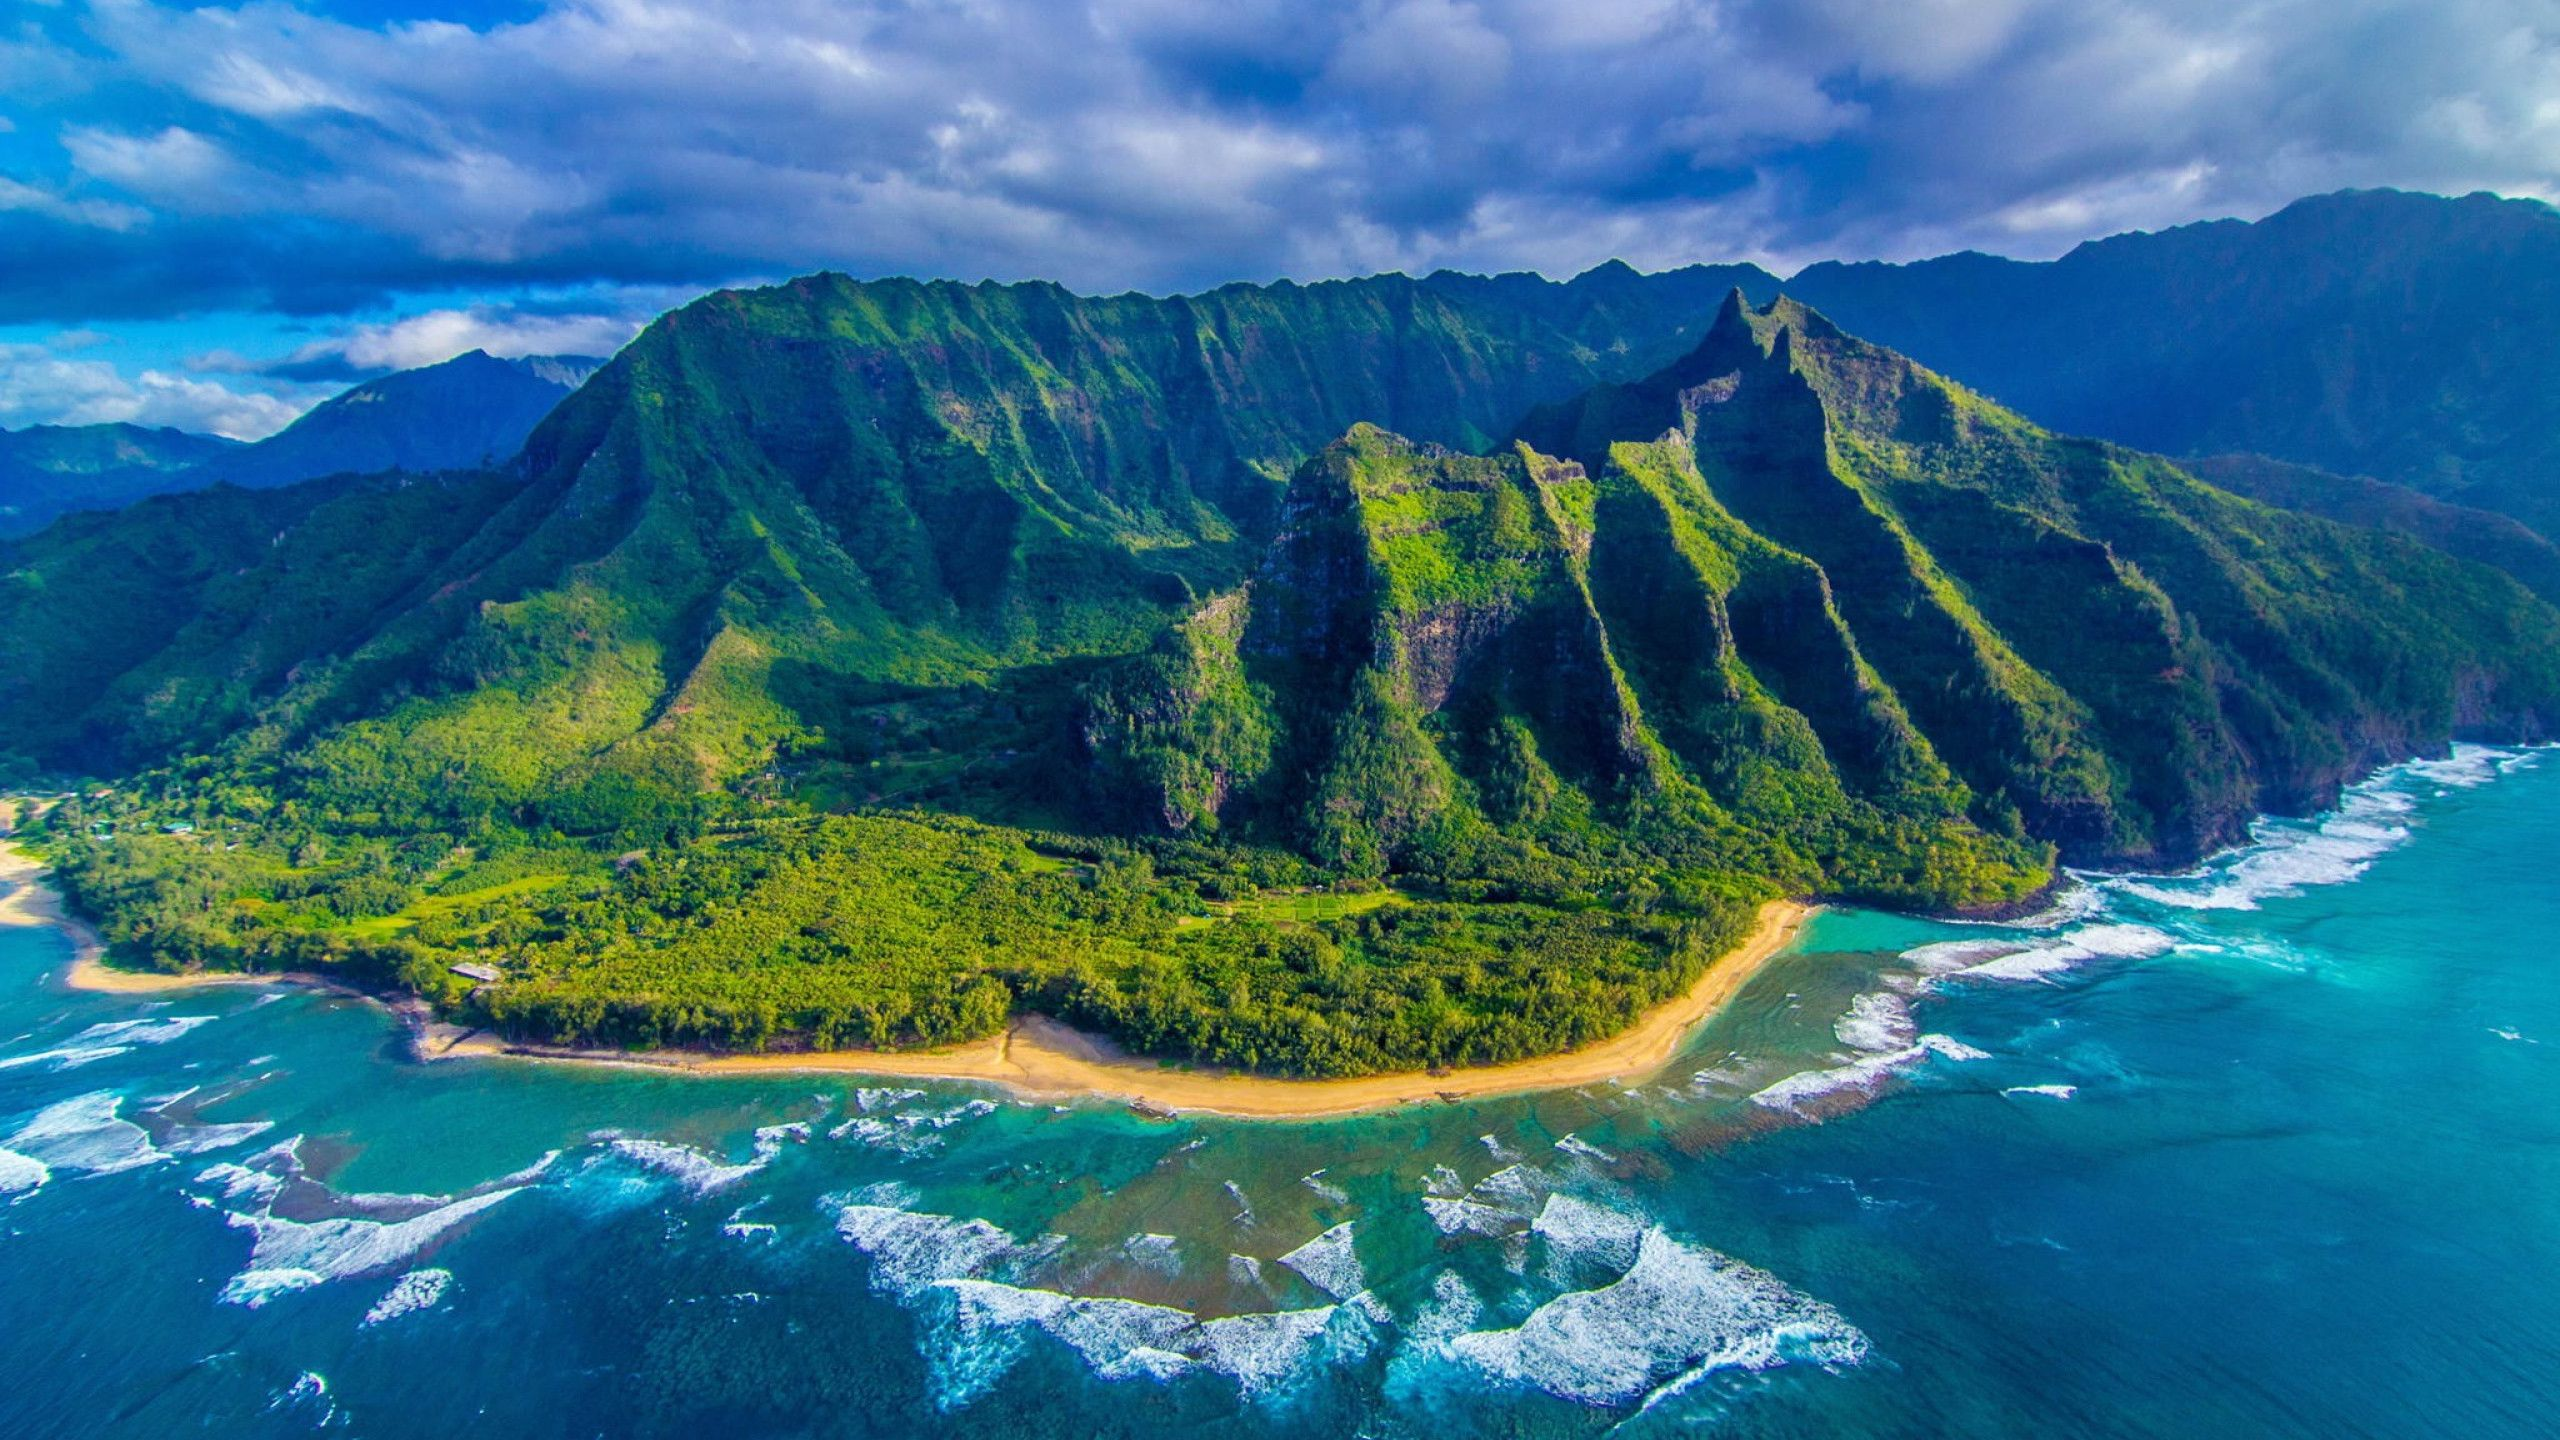 Hawaii Wallpaper Picture For Desktop Wallpaper 2560 x 1440 px 1.08 ...